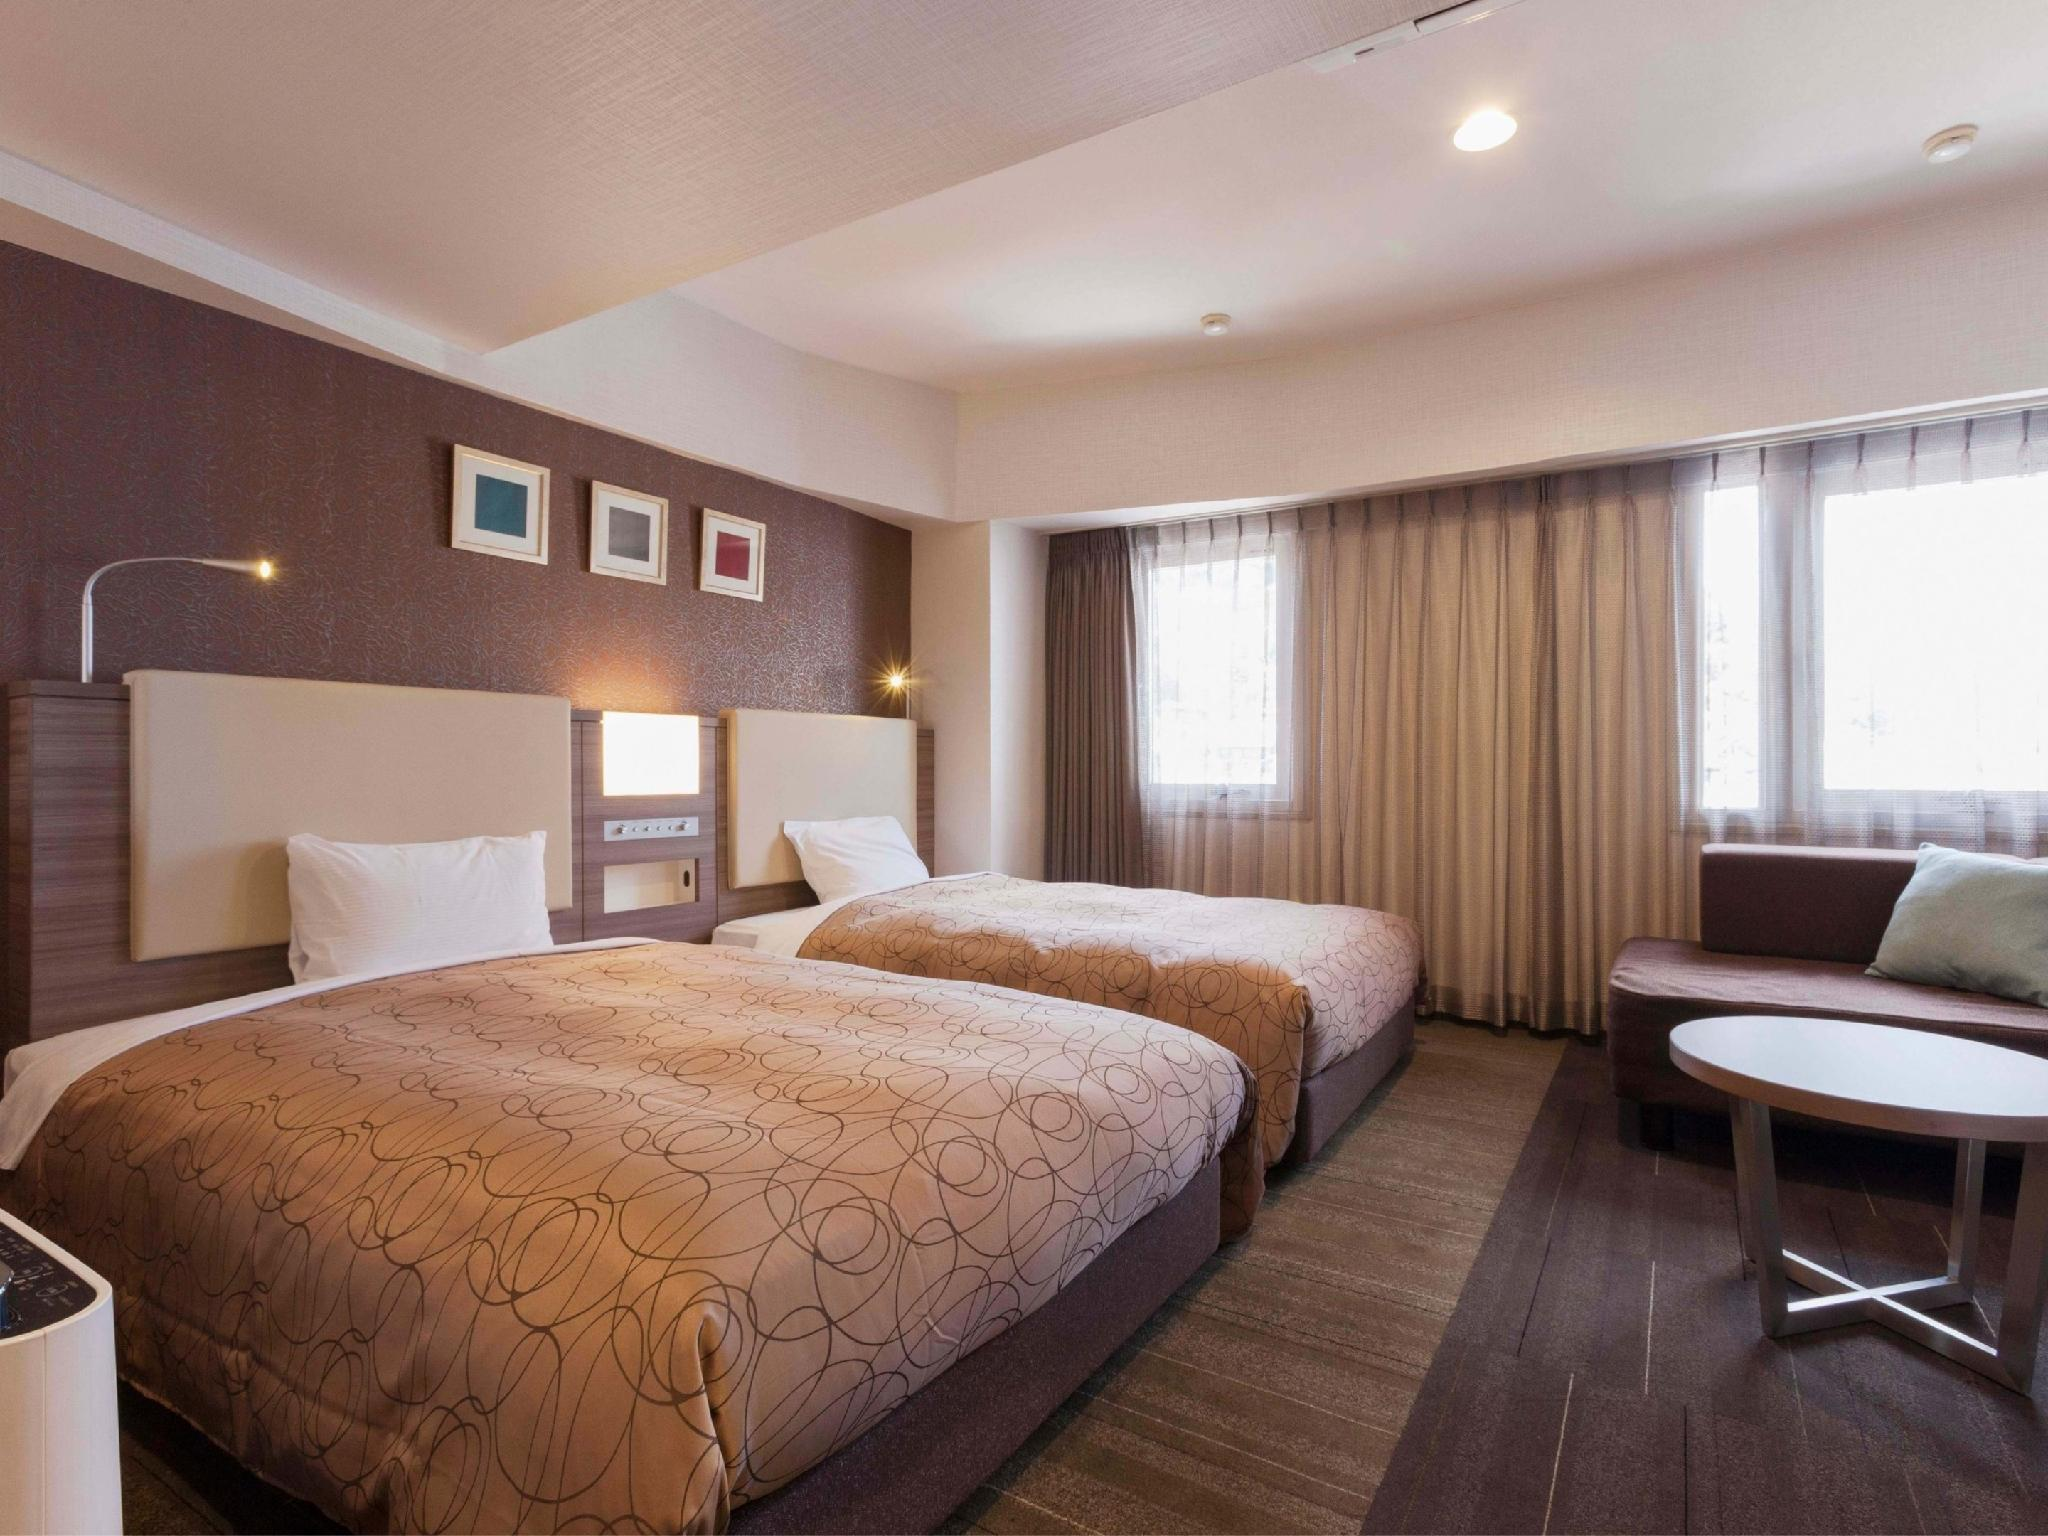 디럭스 트윈룸(리뉴얼) (Deluxe Twin Room *Refurbished room)